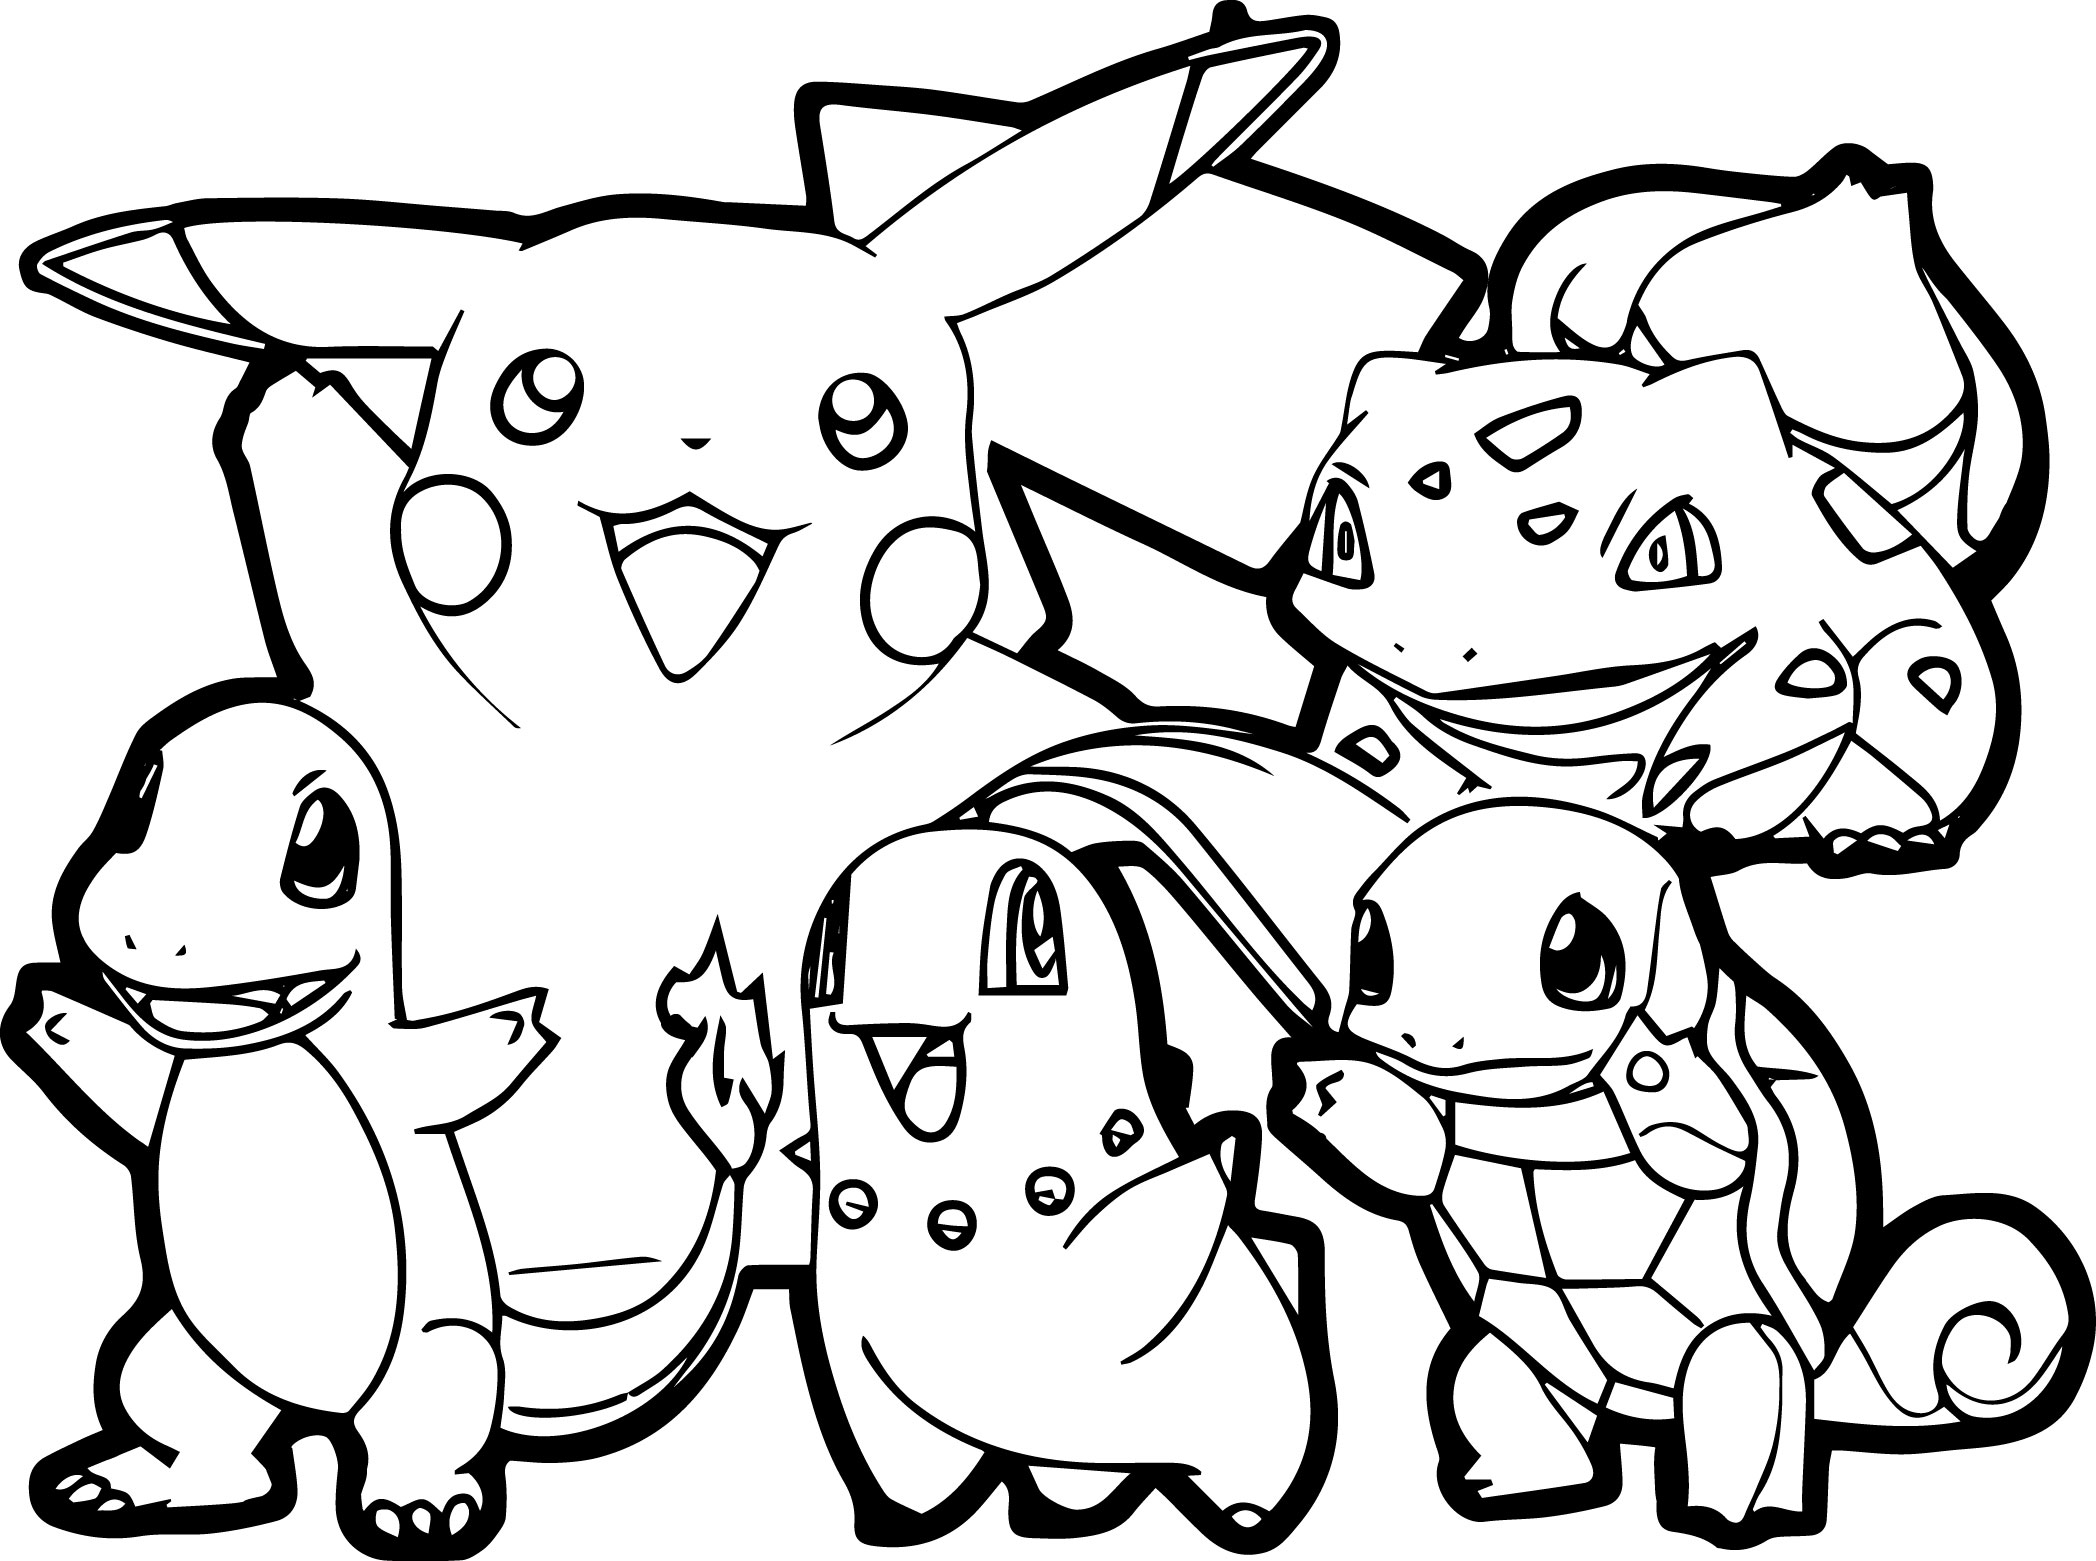 Pokemon traits epais coloriages pokemon coloriages - Coloriage de pokemon a imprimer ...